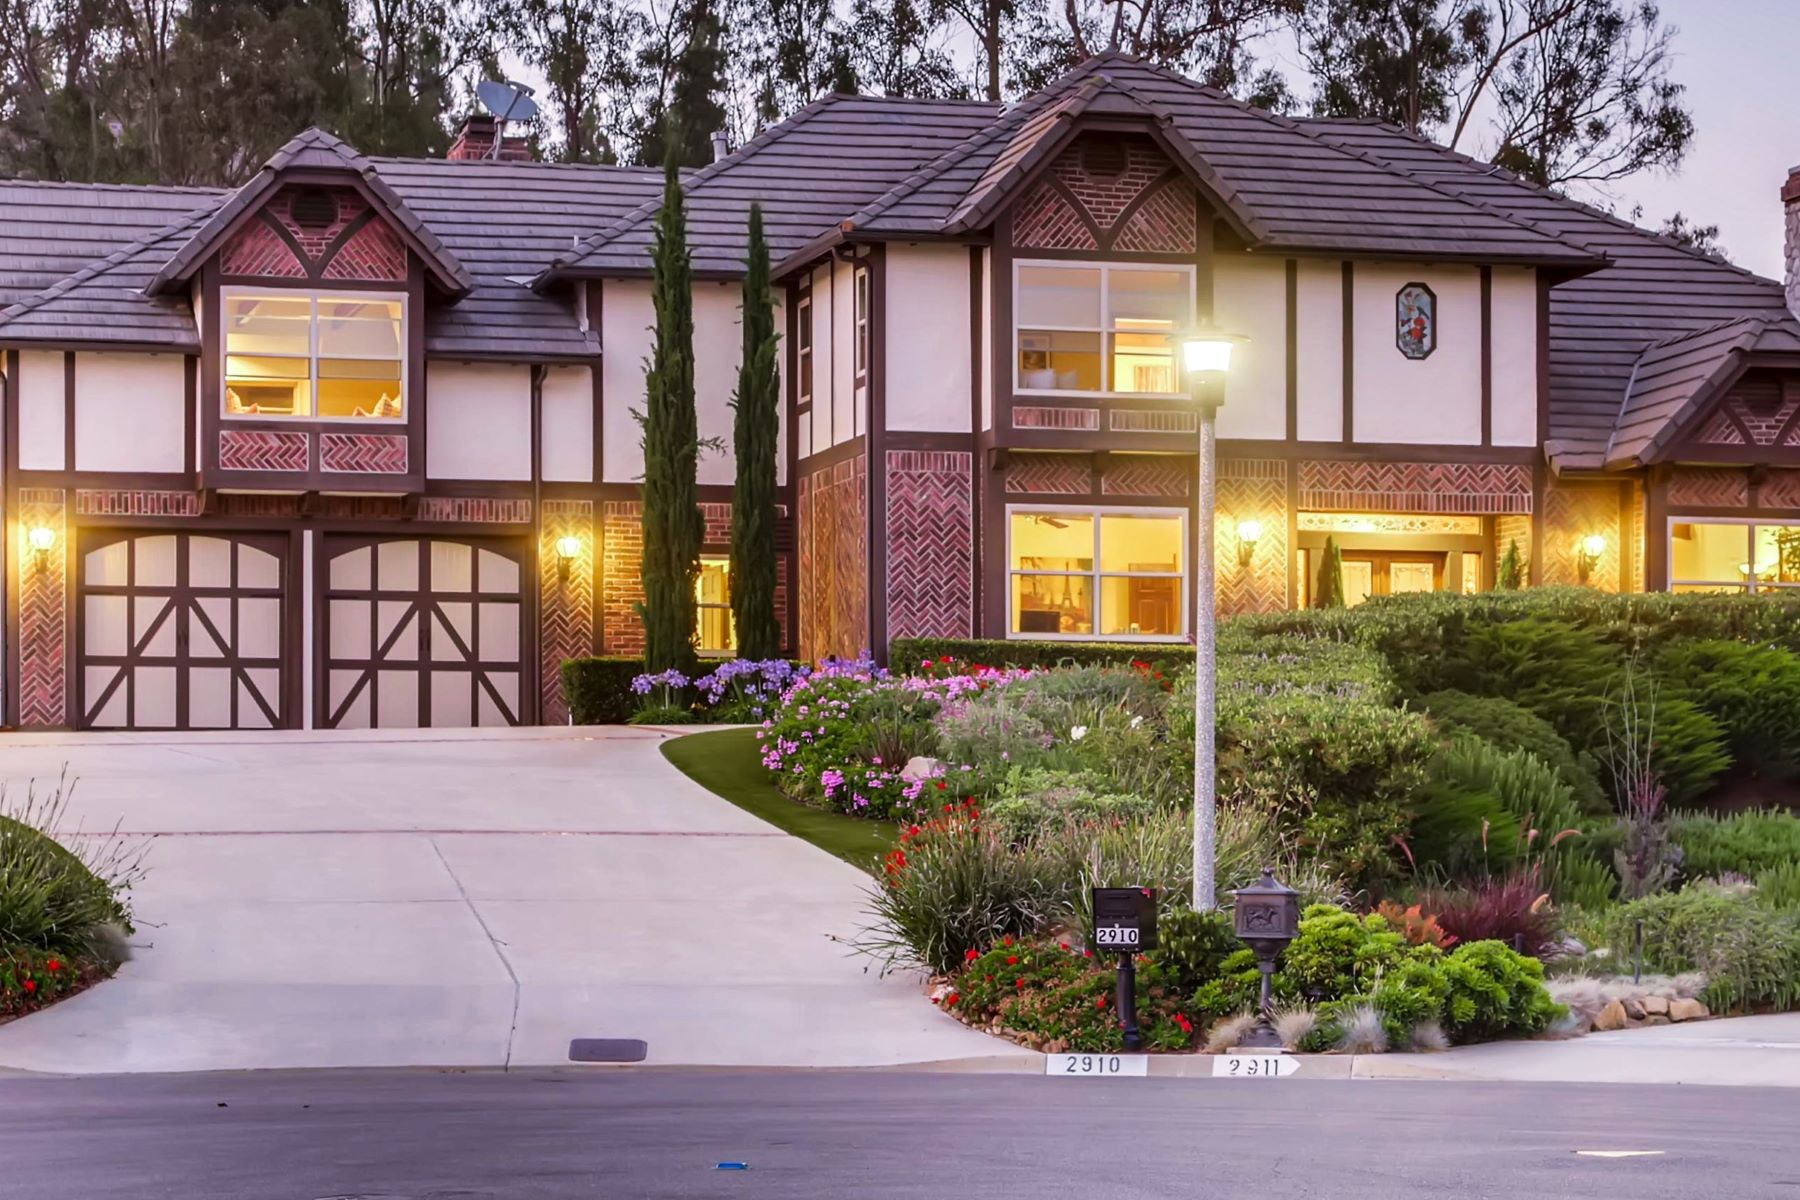 Single Family Homes for Active at 2910 Candil Place Carlsbad, California 92009 United States